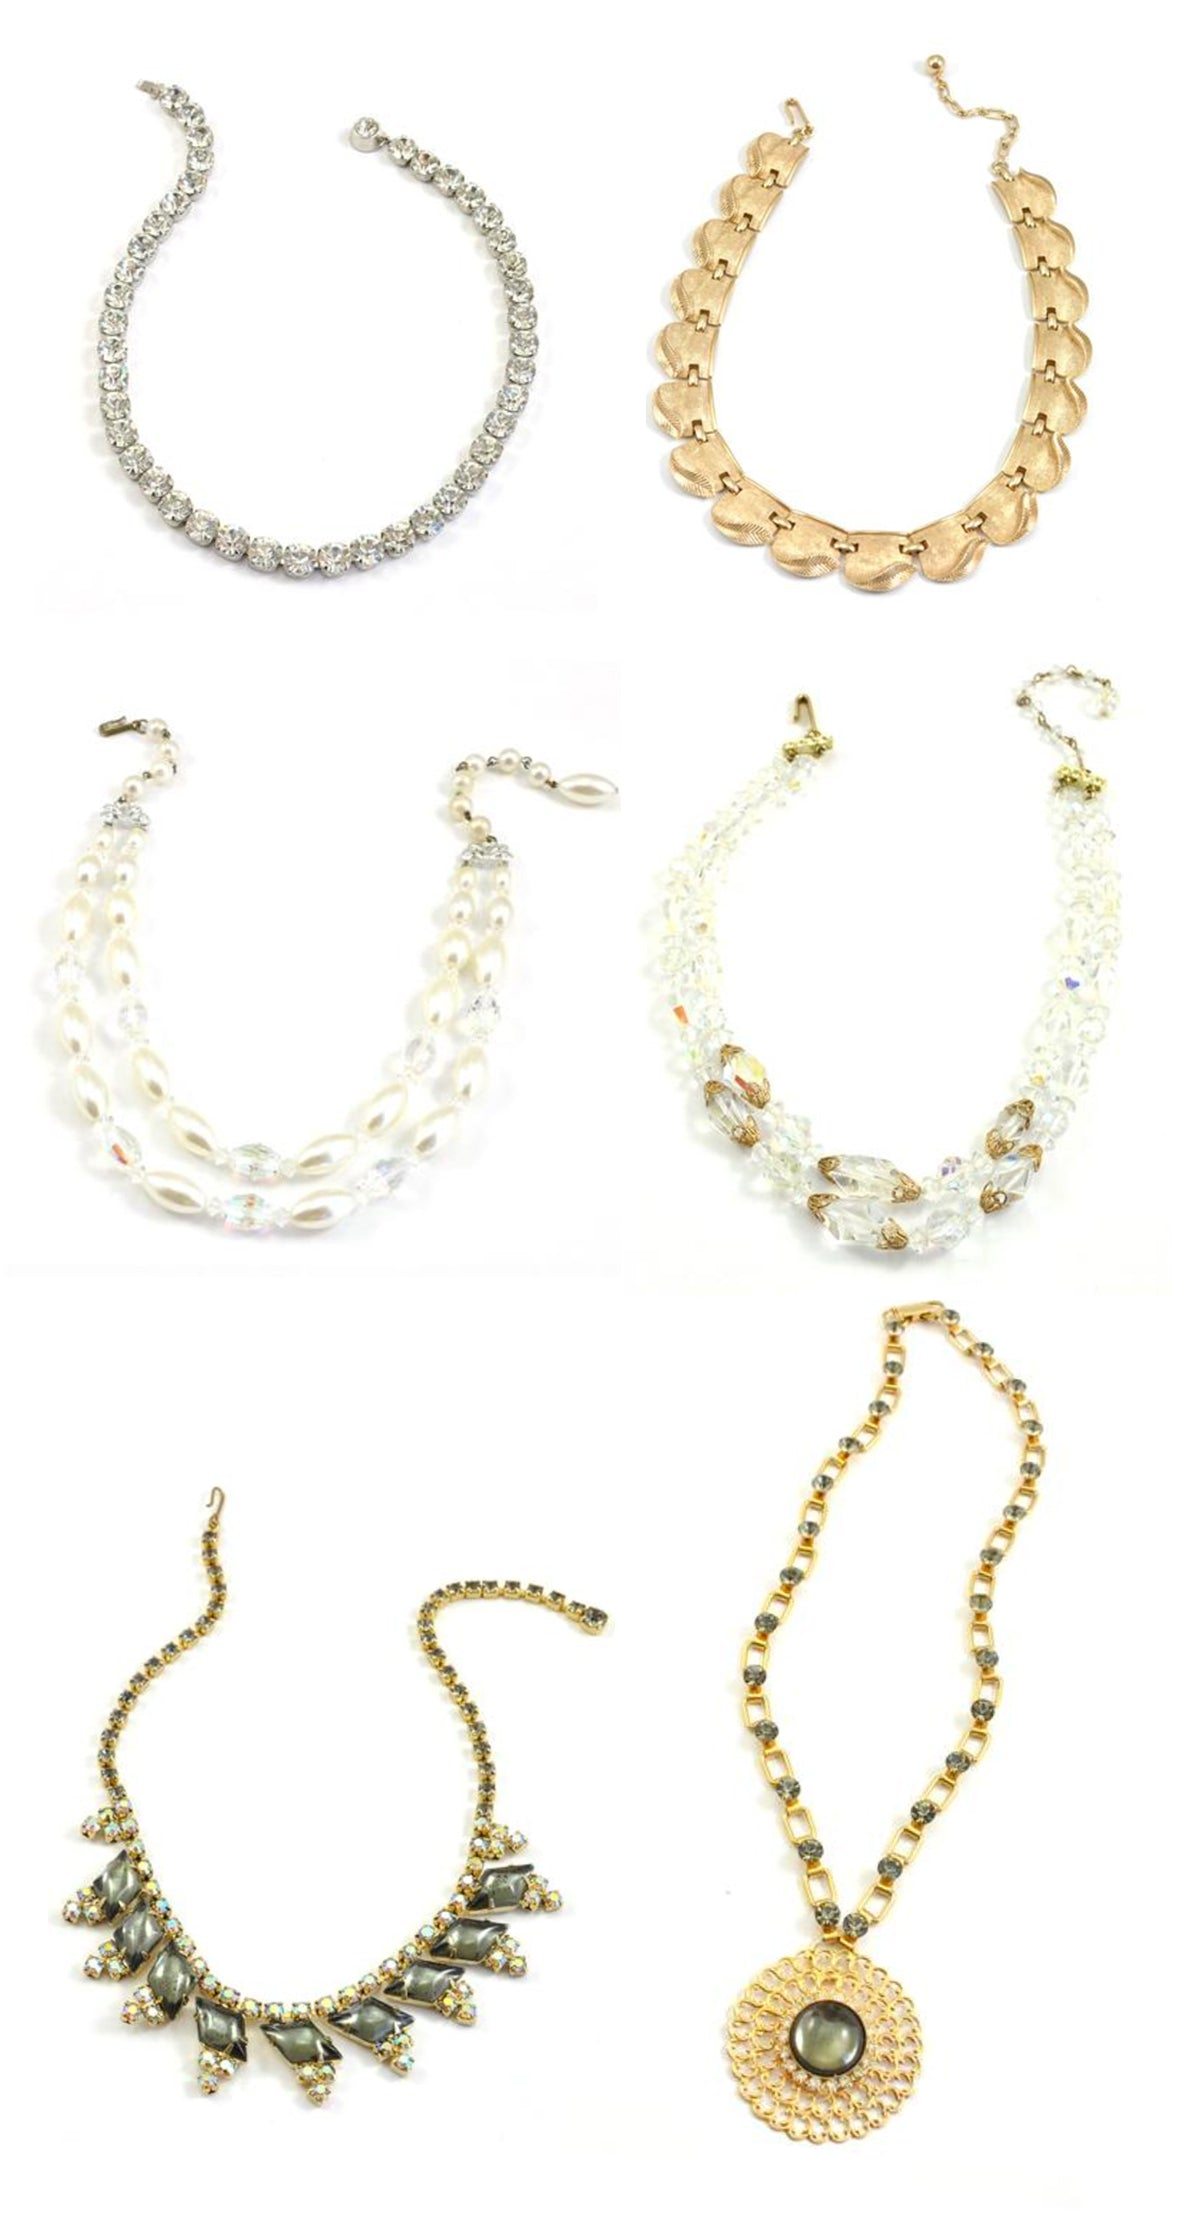 Layered Vintage Necklaces for Holiday Occasions